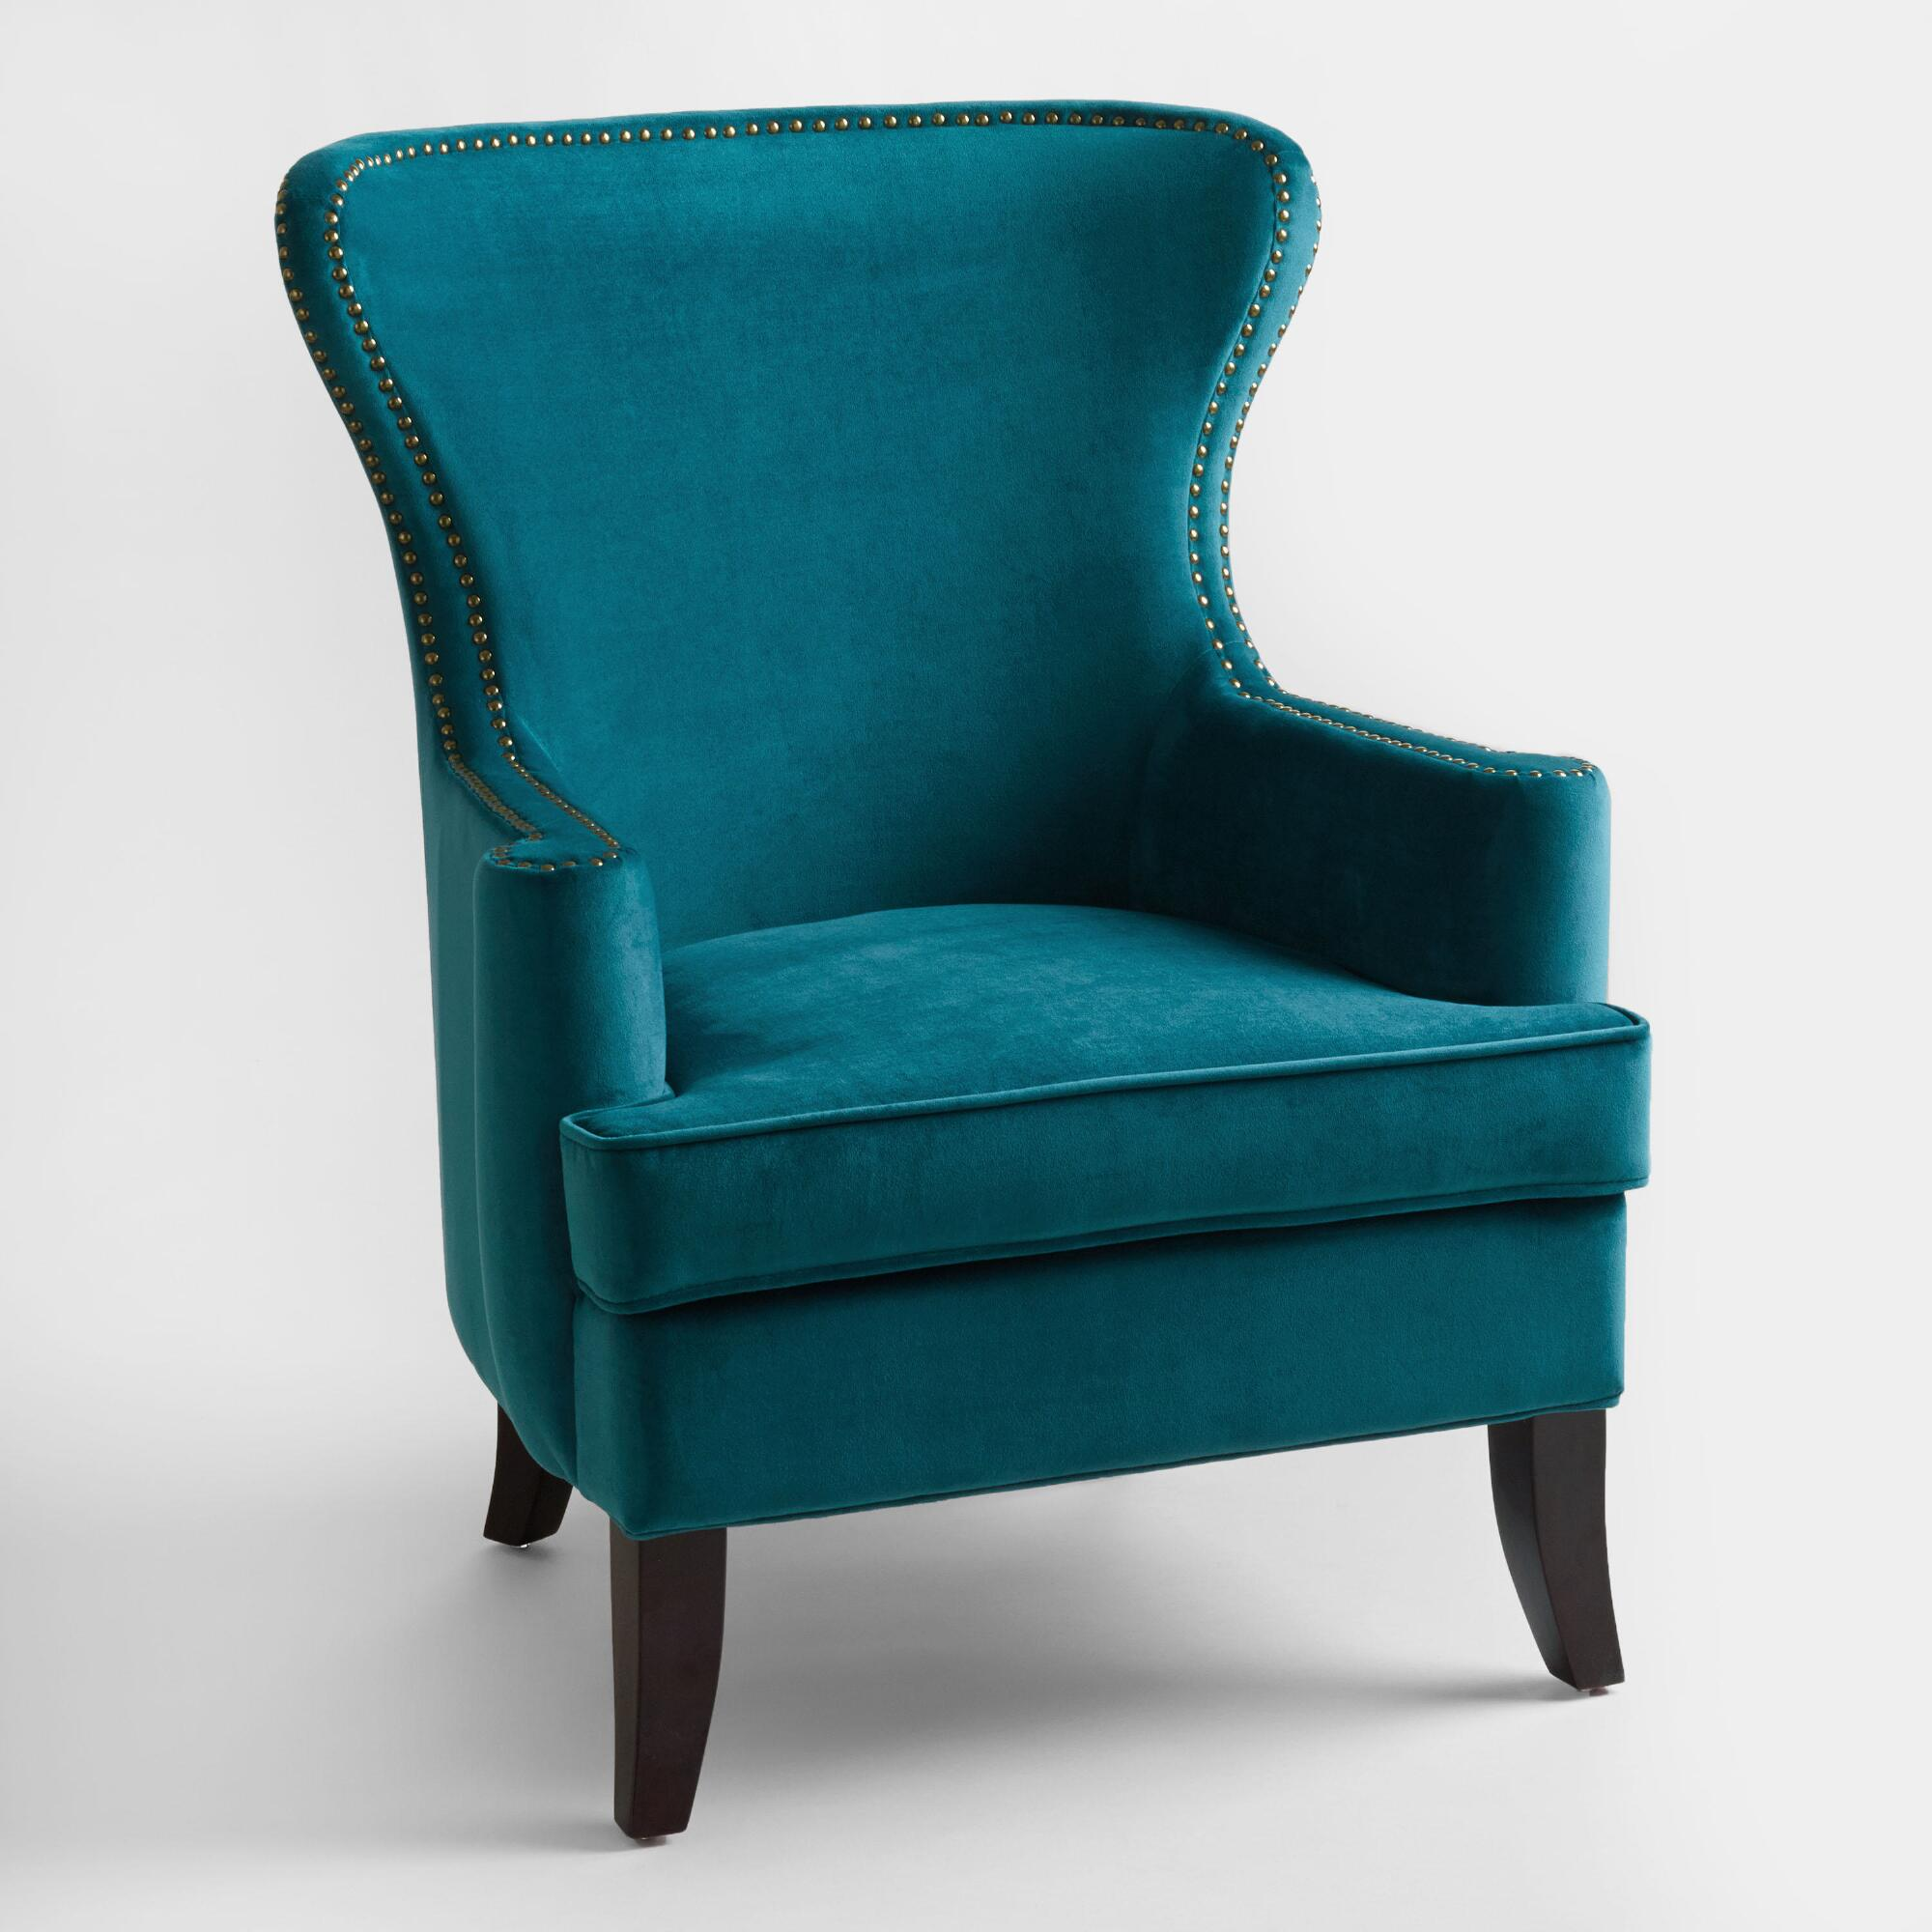 Pacific blue elliott wingback chair world market - Blue living room chairs ...